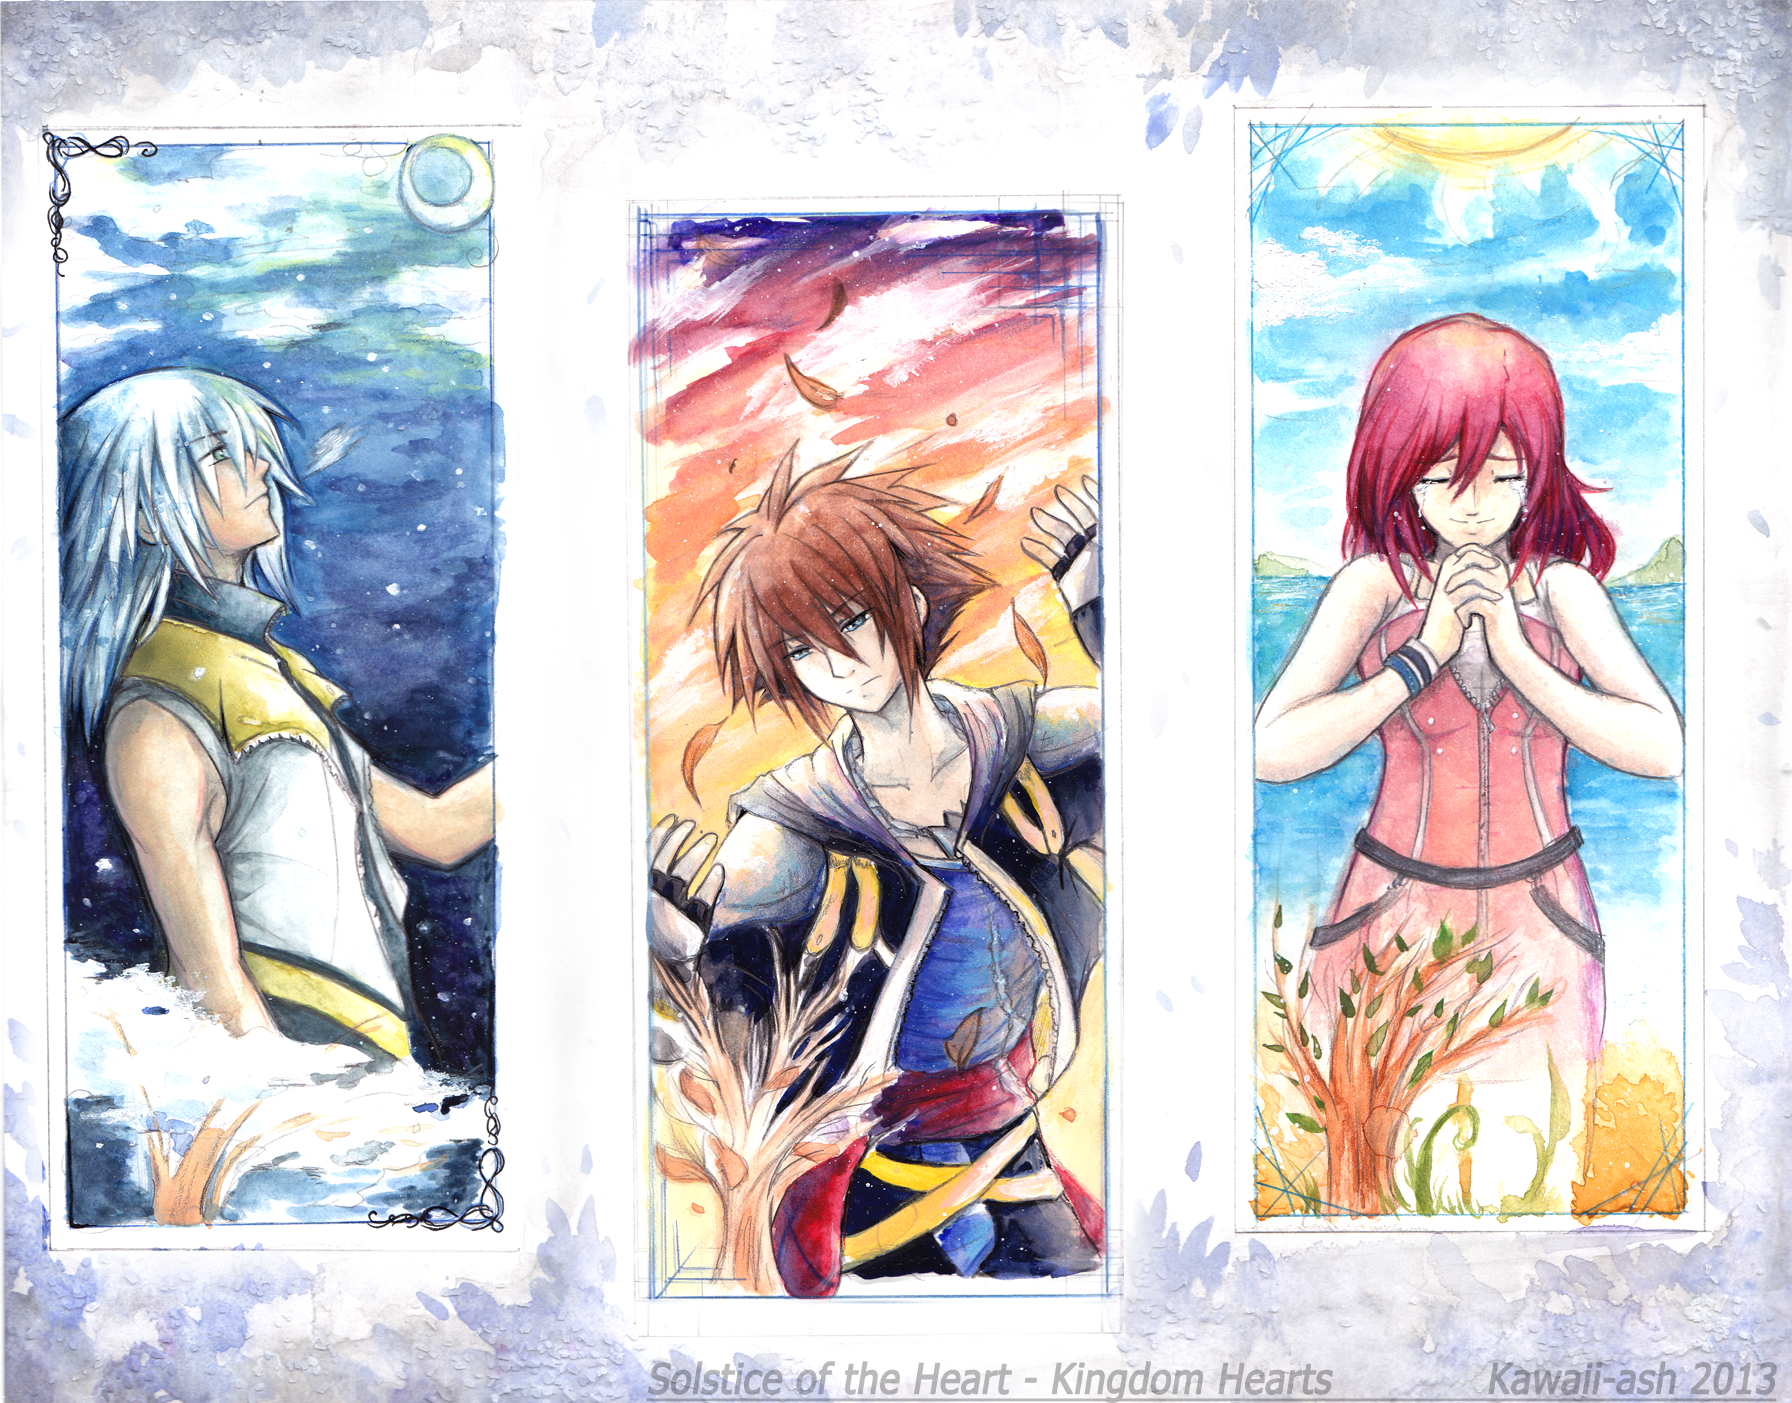 solstice_of_the_heart___kingdom_hearts_by_kawaii_ash-d6k8q9f.png